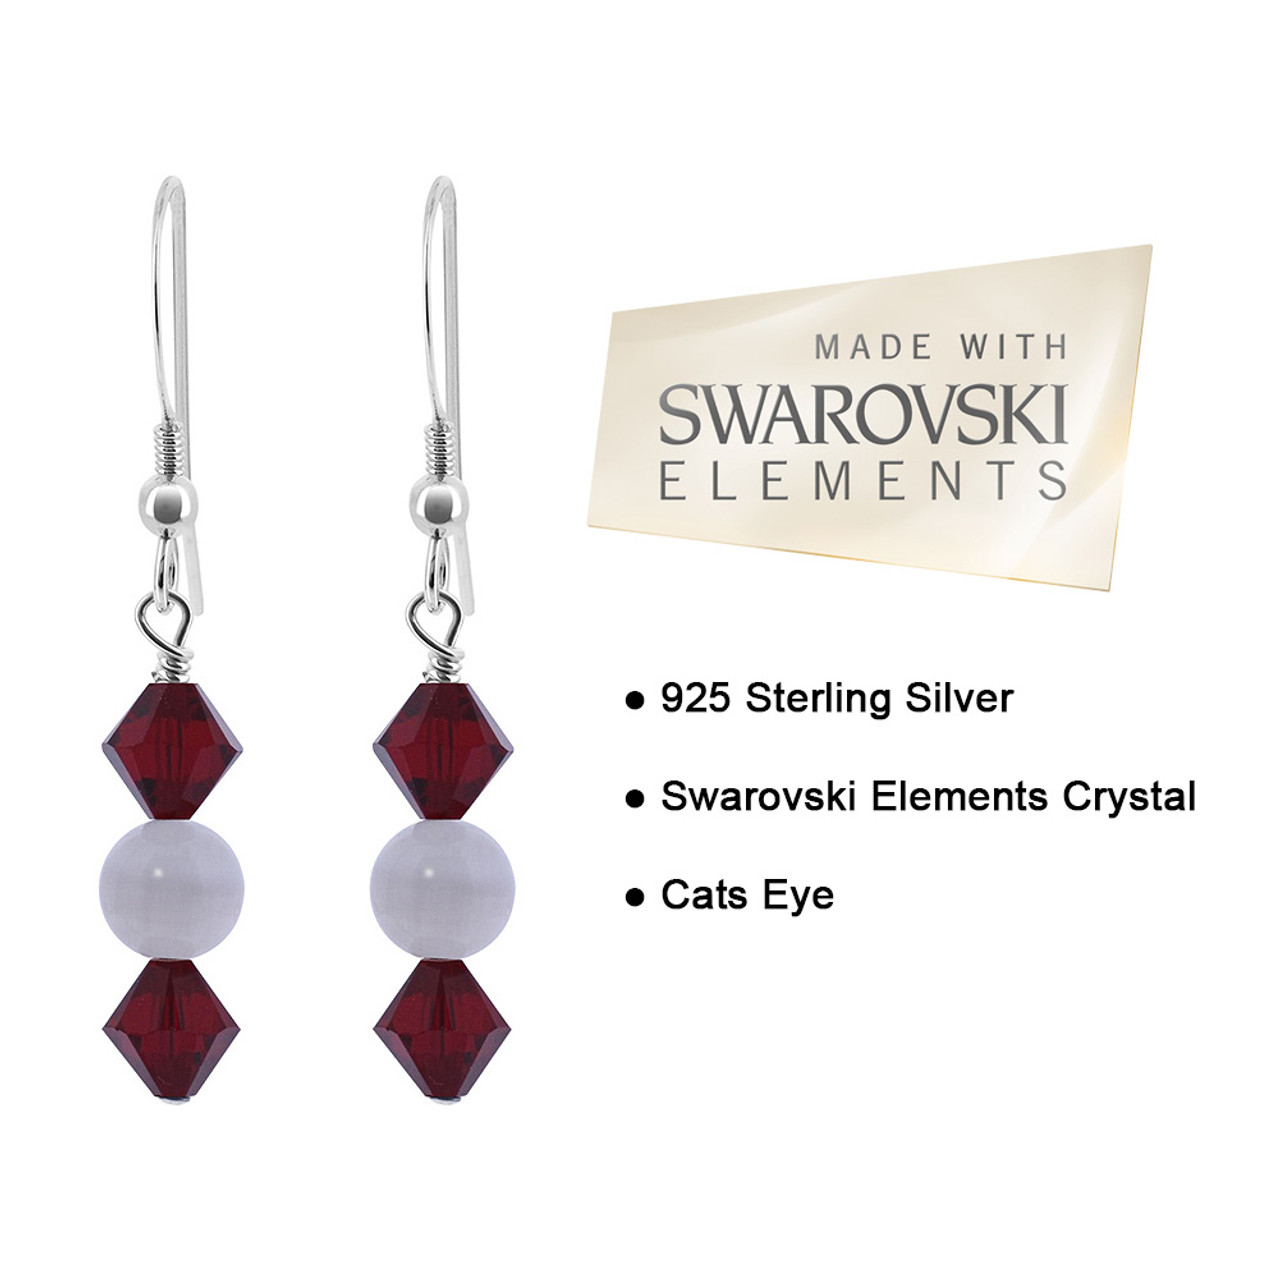 Cats Eye Bead and Crystal 925 Silver Drop Earrings